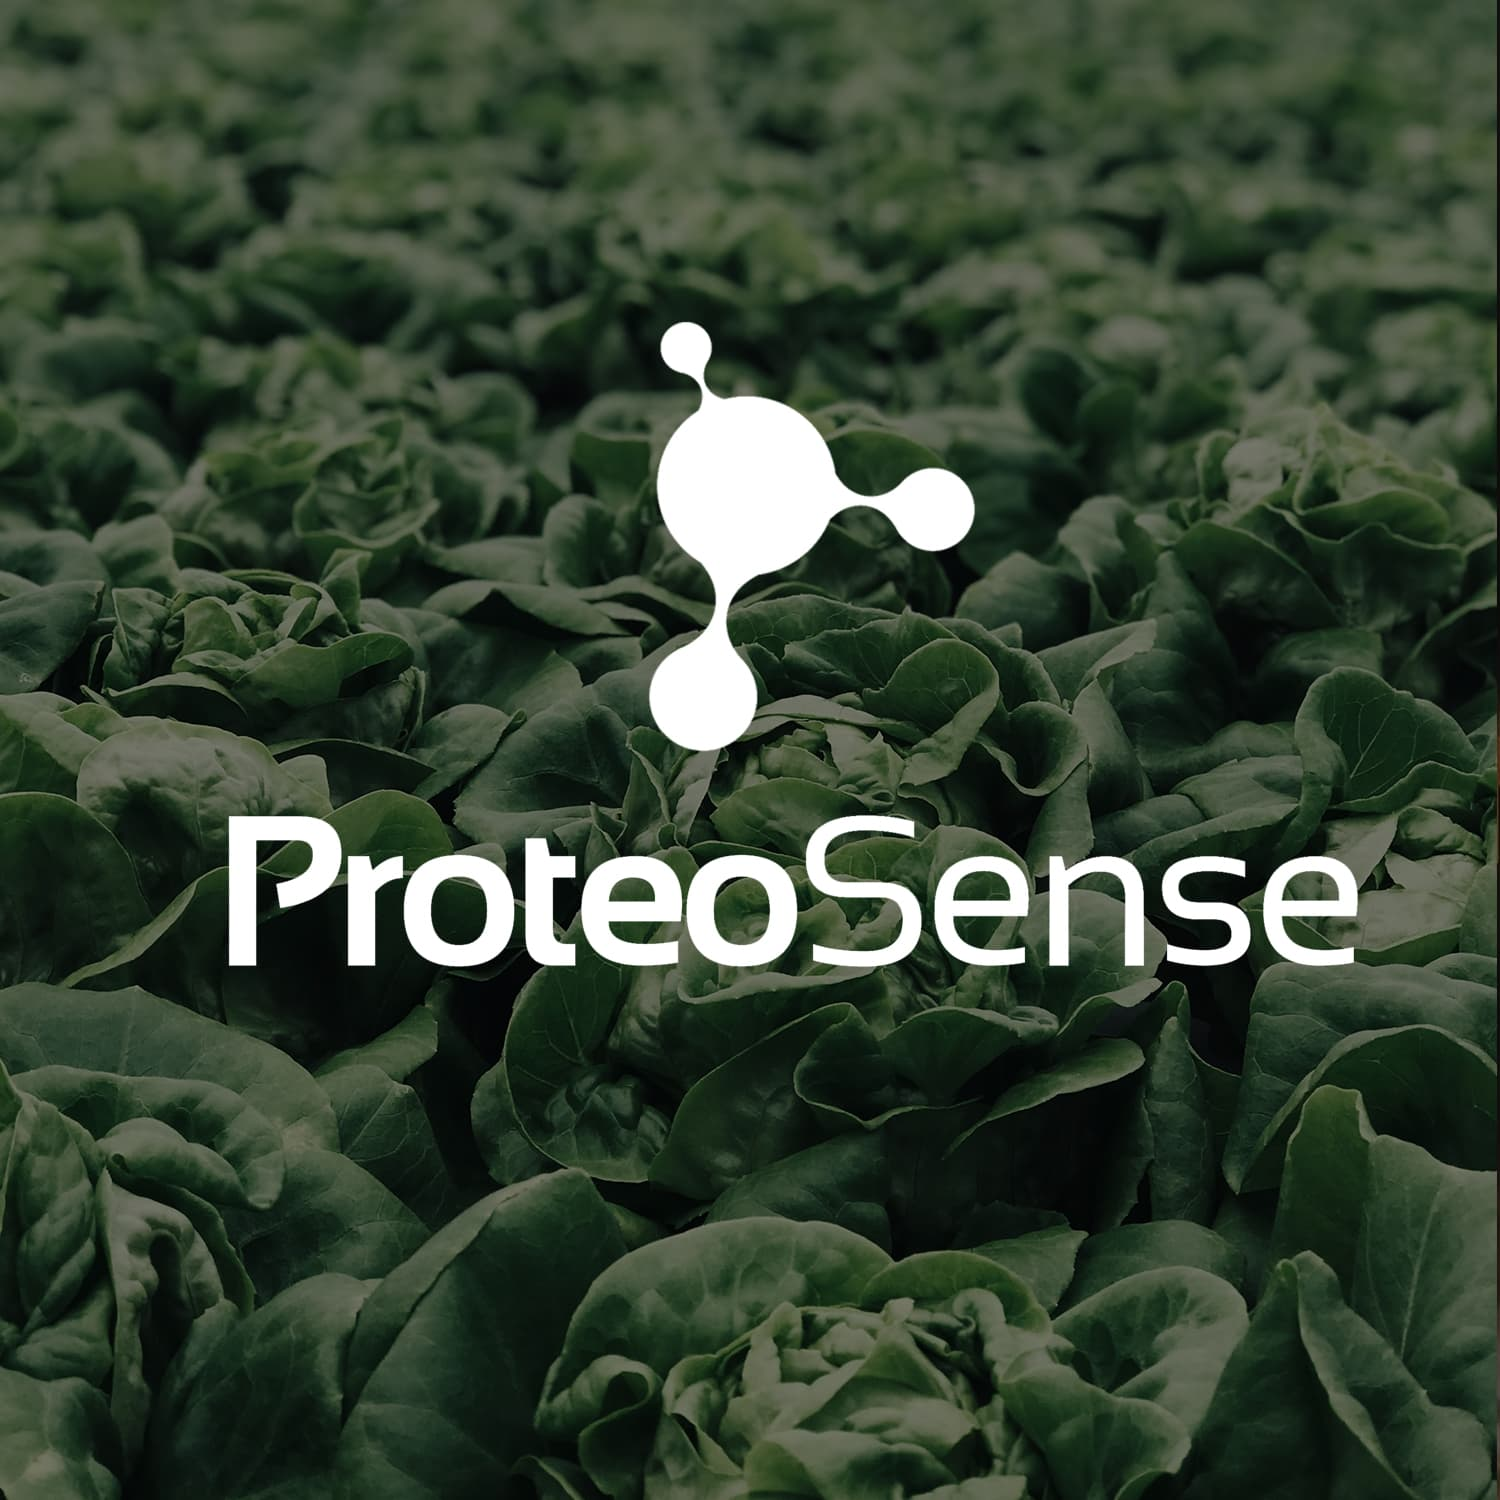 Proteosense Logo Display.jpg